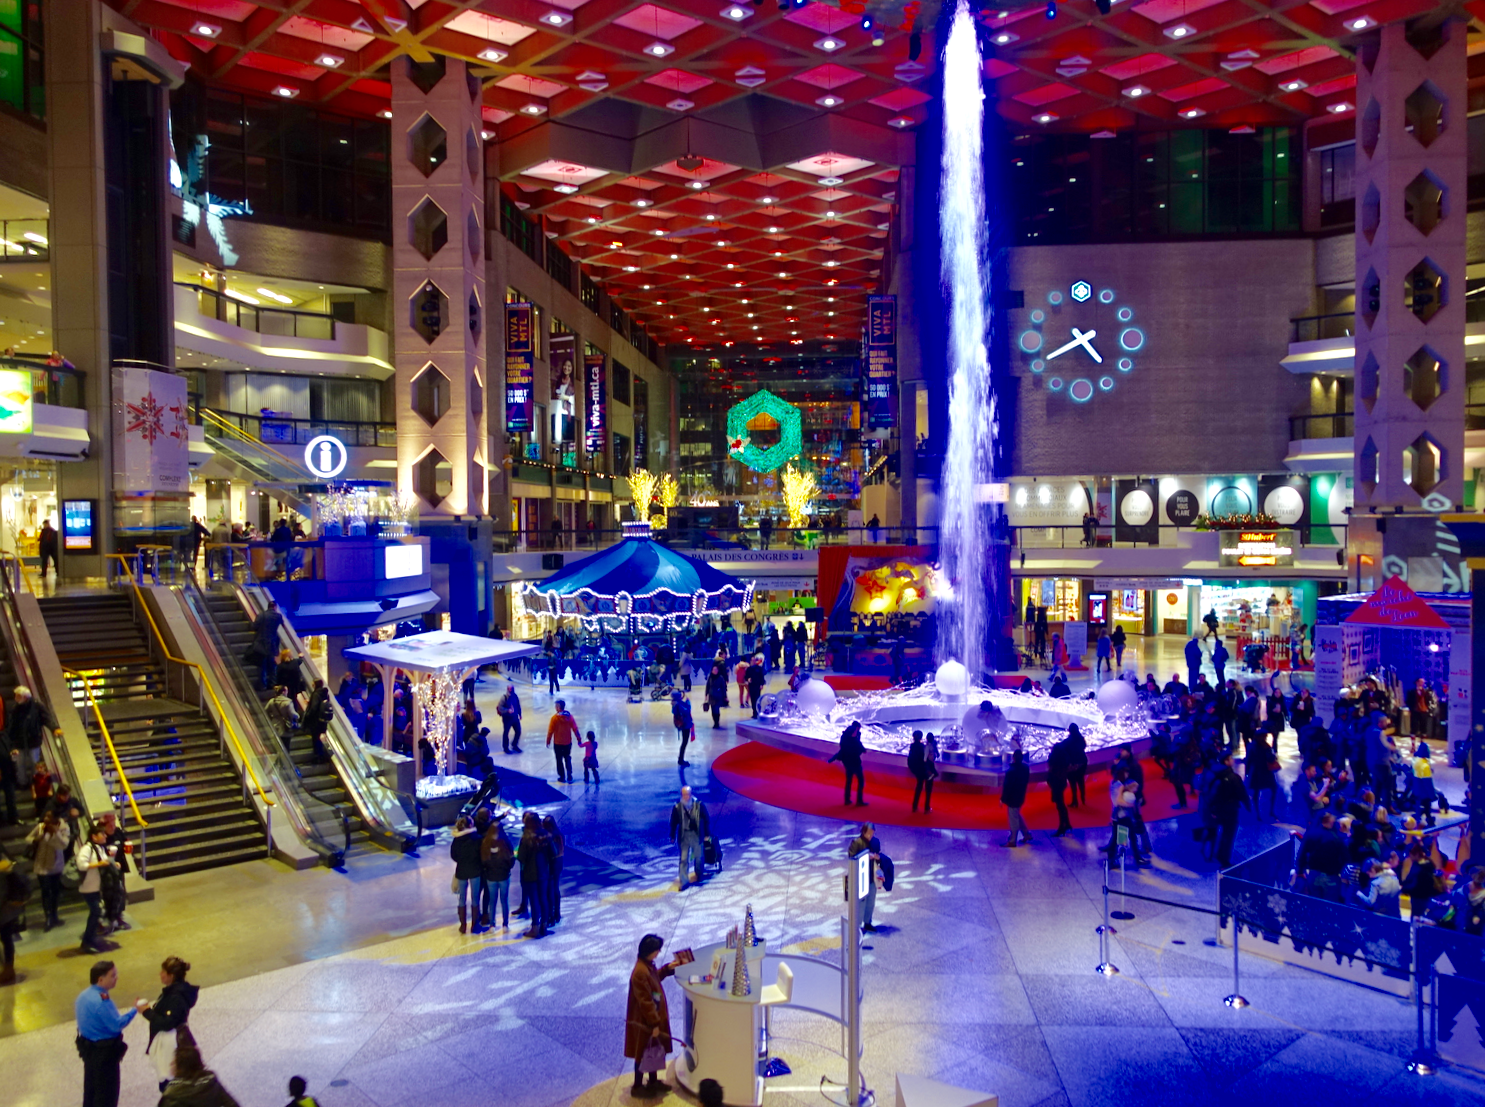 Montreal's Desjardin Complex lobby is an indoor town square, complete with a dancing fountain and year-round programming.